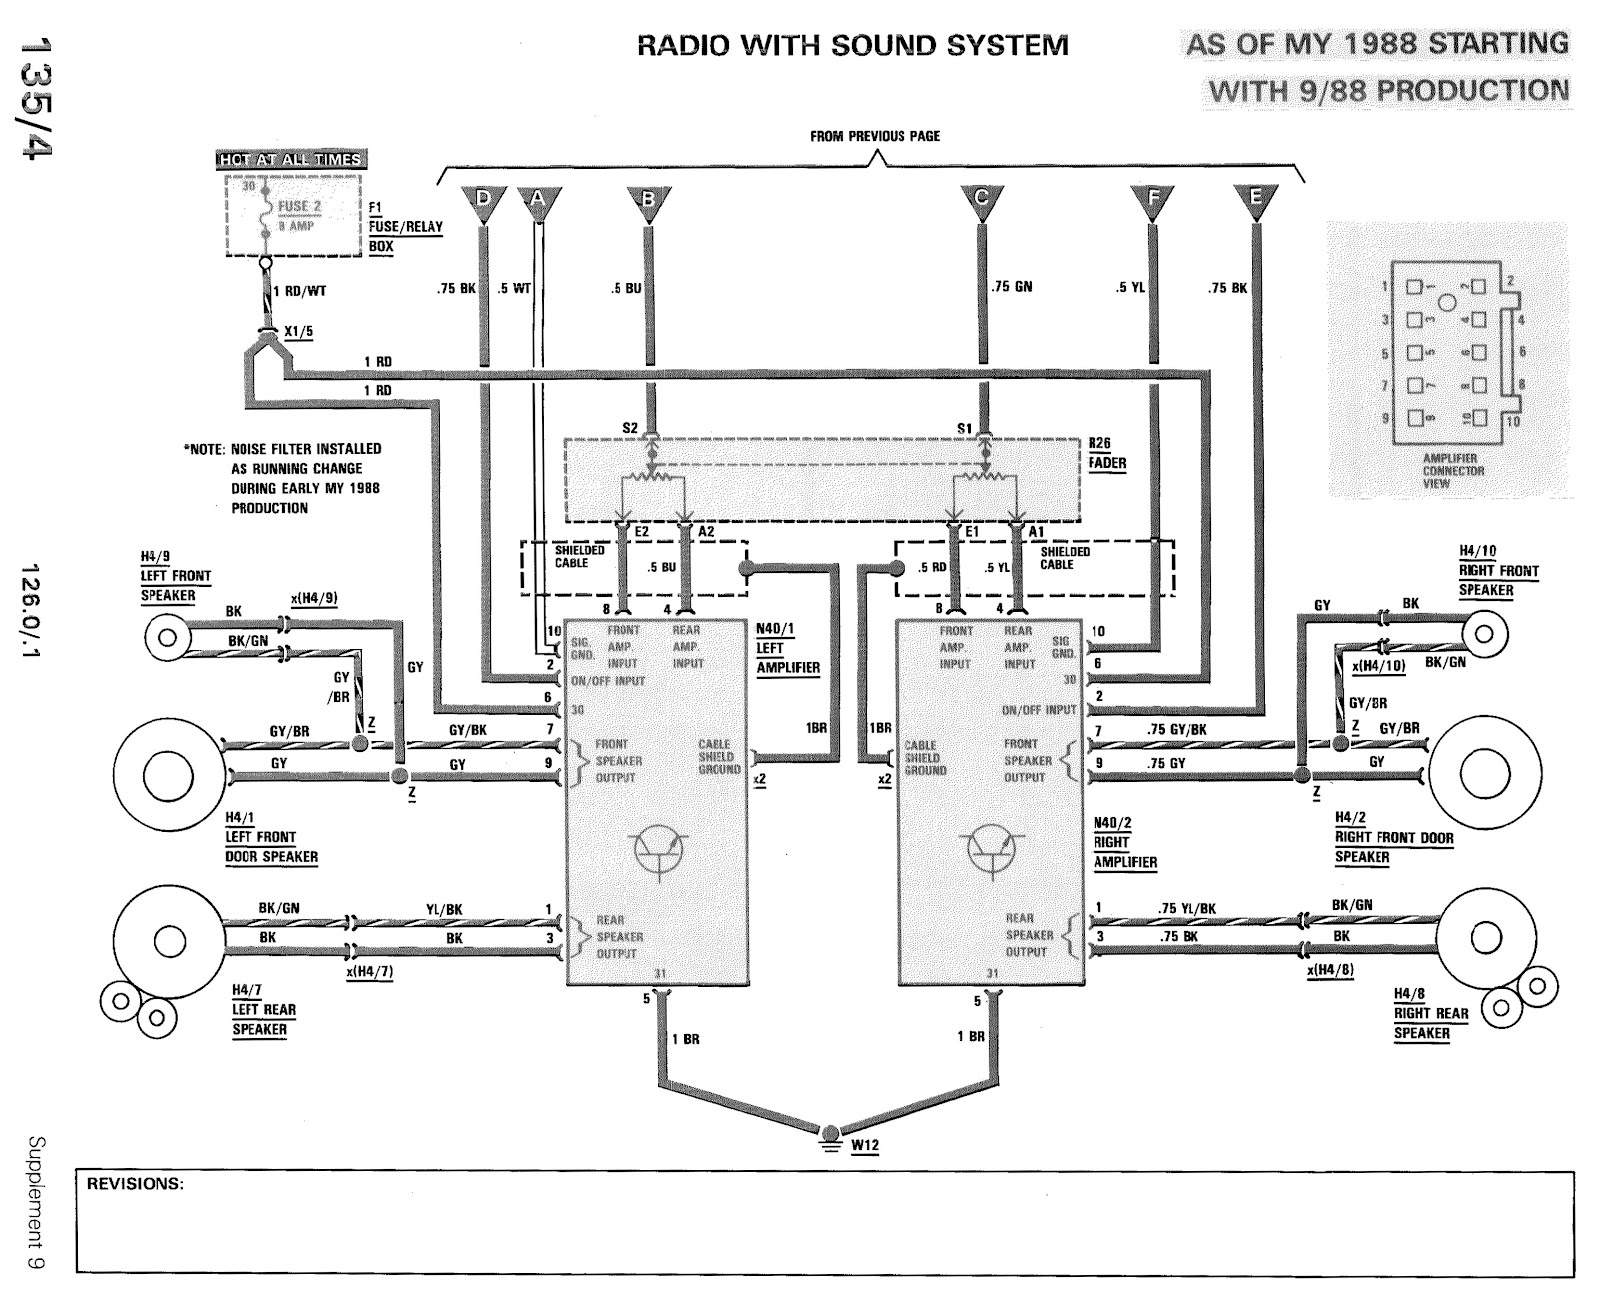 Astonishing Wrg 3497 Mercedes Ignition Switch Wiring Plug Diagram 1975 To 1995 Benz Wiring 101 Akebretraxxcnl